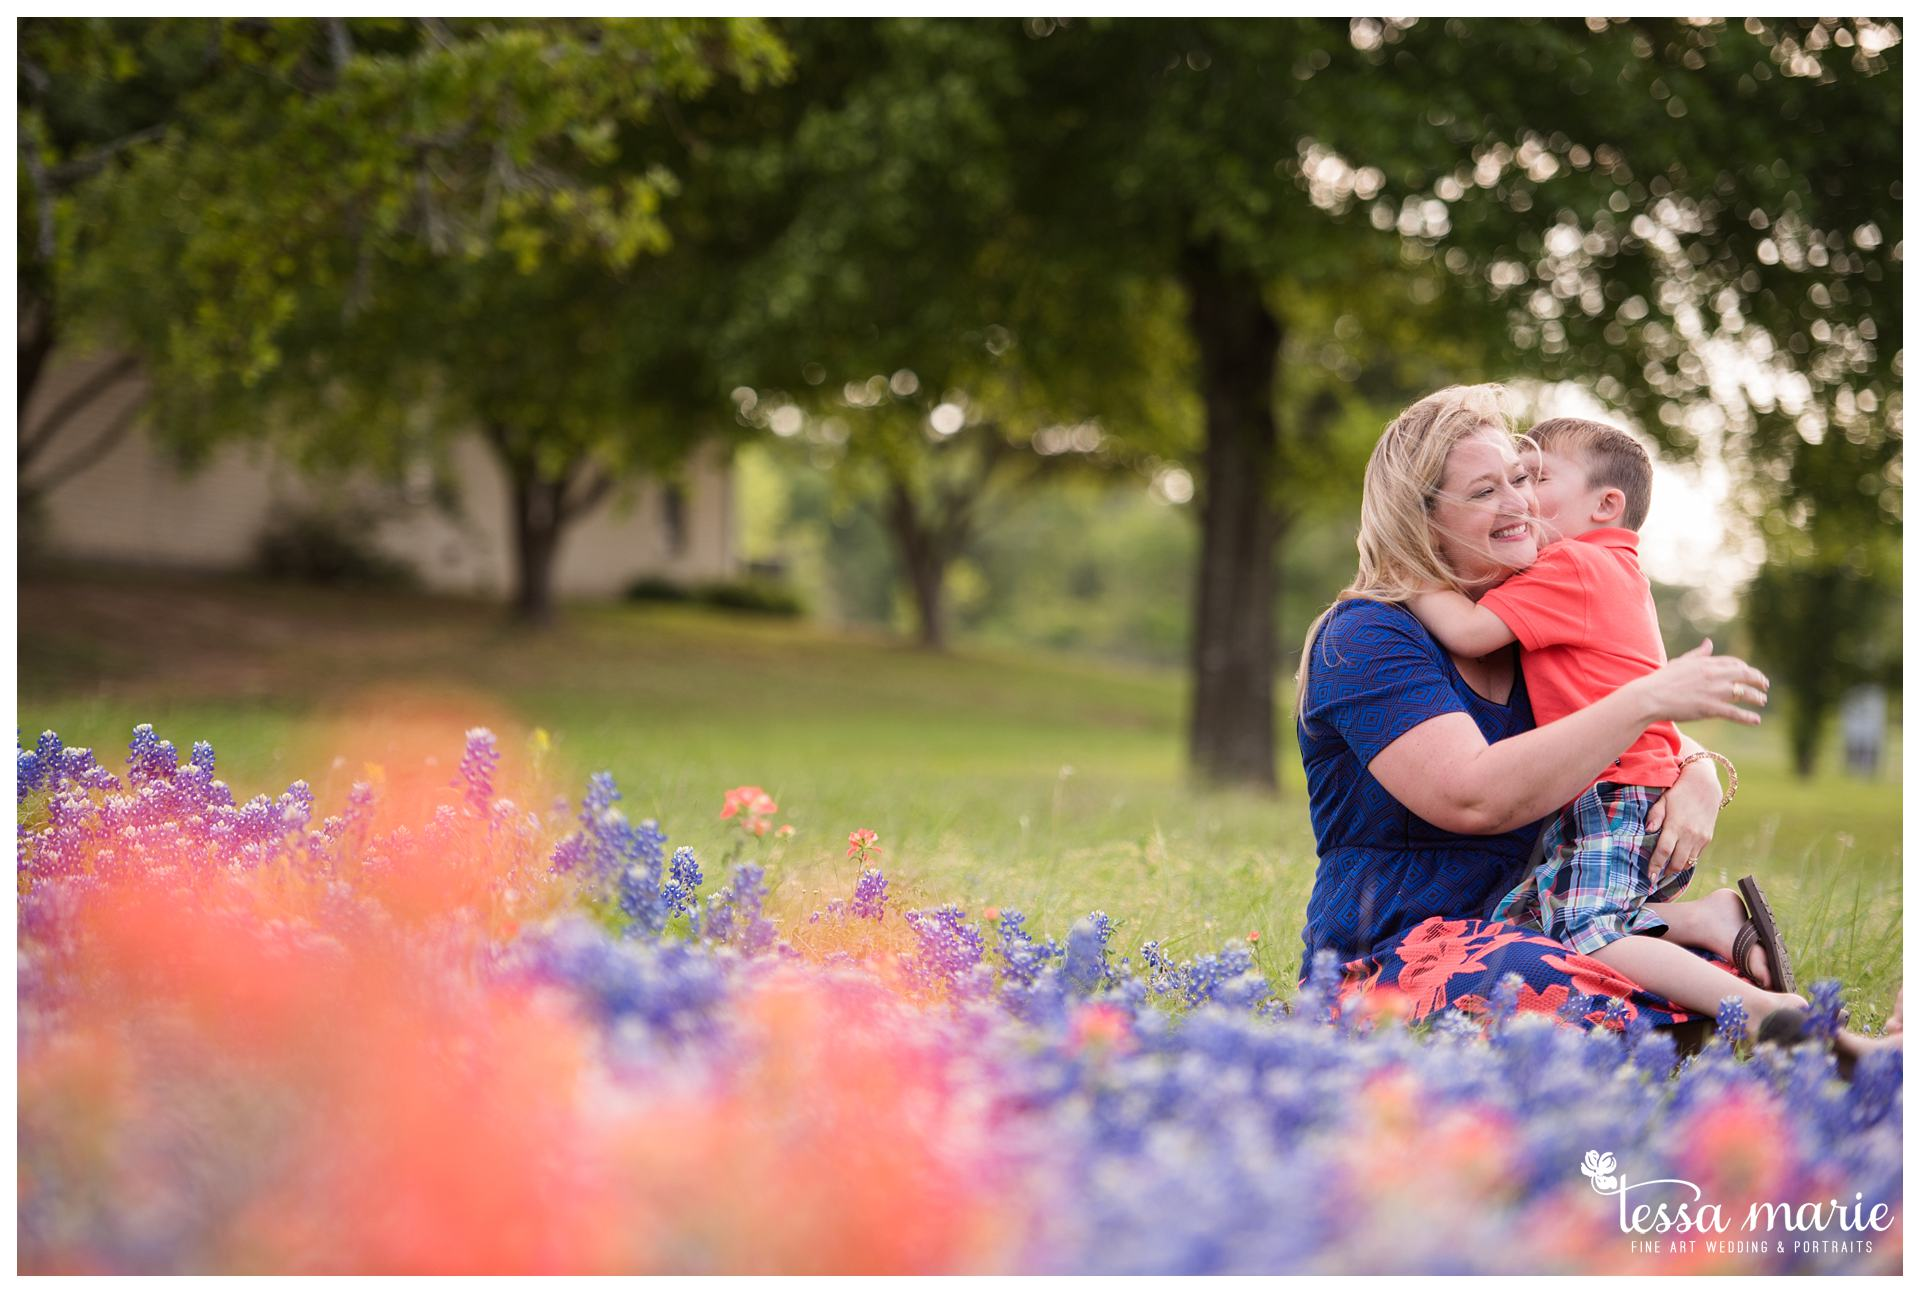 tessa_marie_weddings_legacy_story_focused_wedding_pictures_atlanta_wedding_photographer_family_pictures_portrait_Fine_art_memories_mothers_day_spring_moments_0224